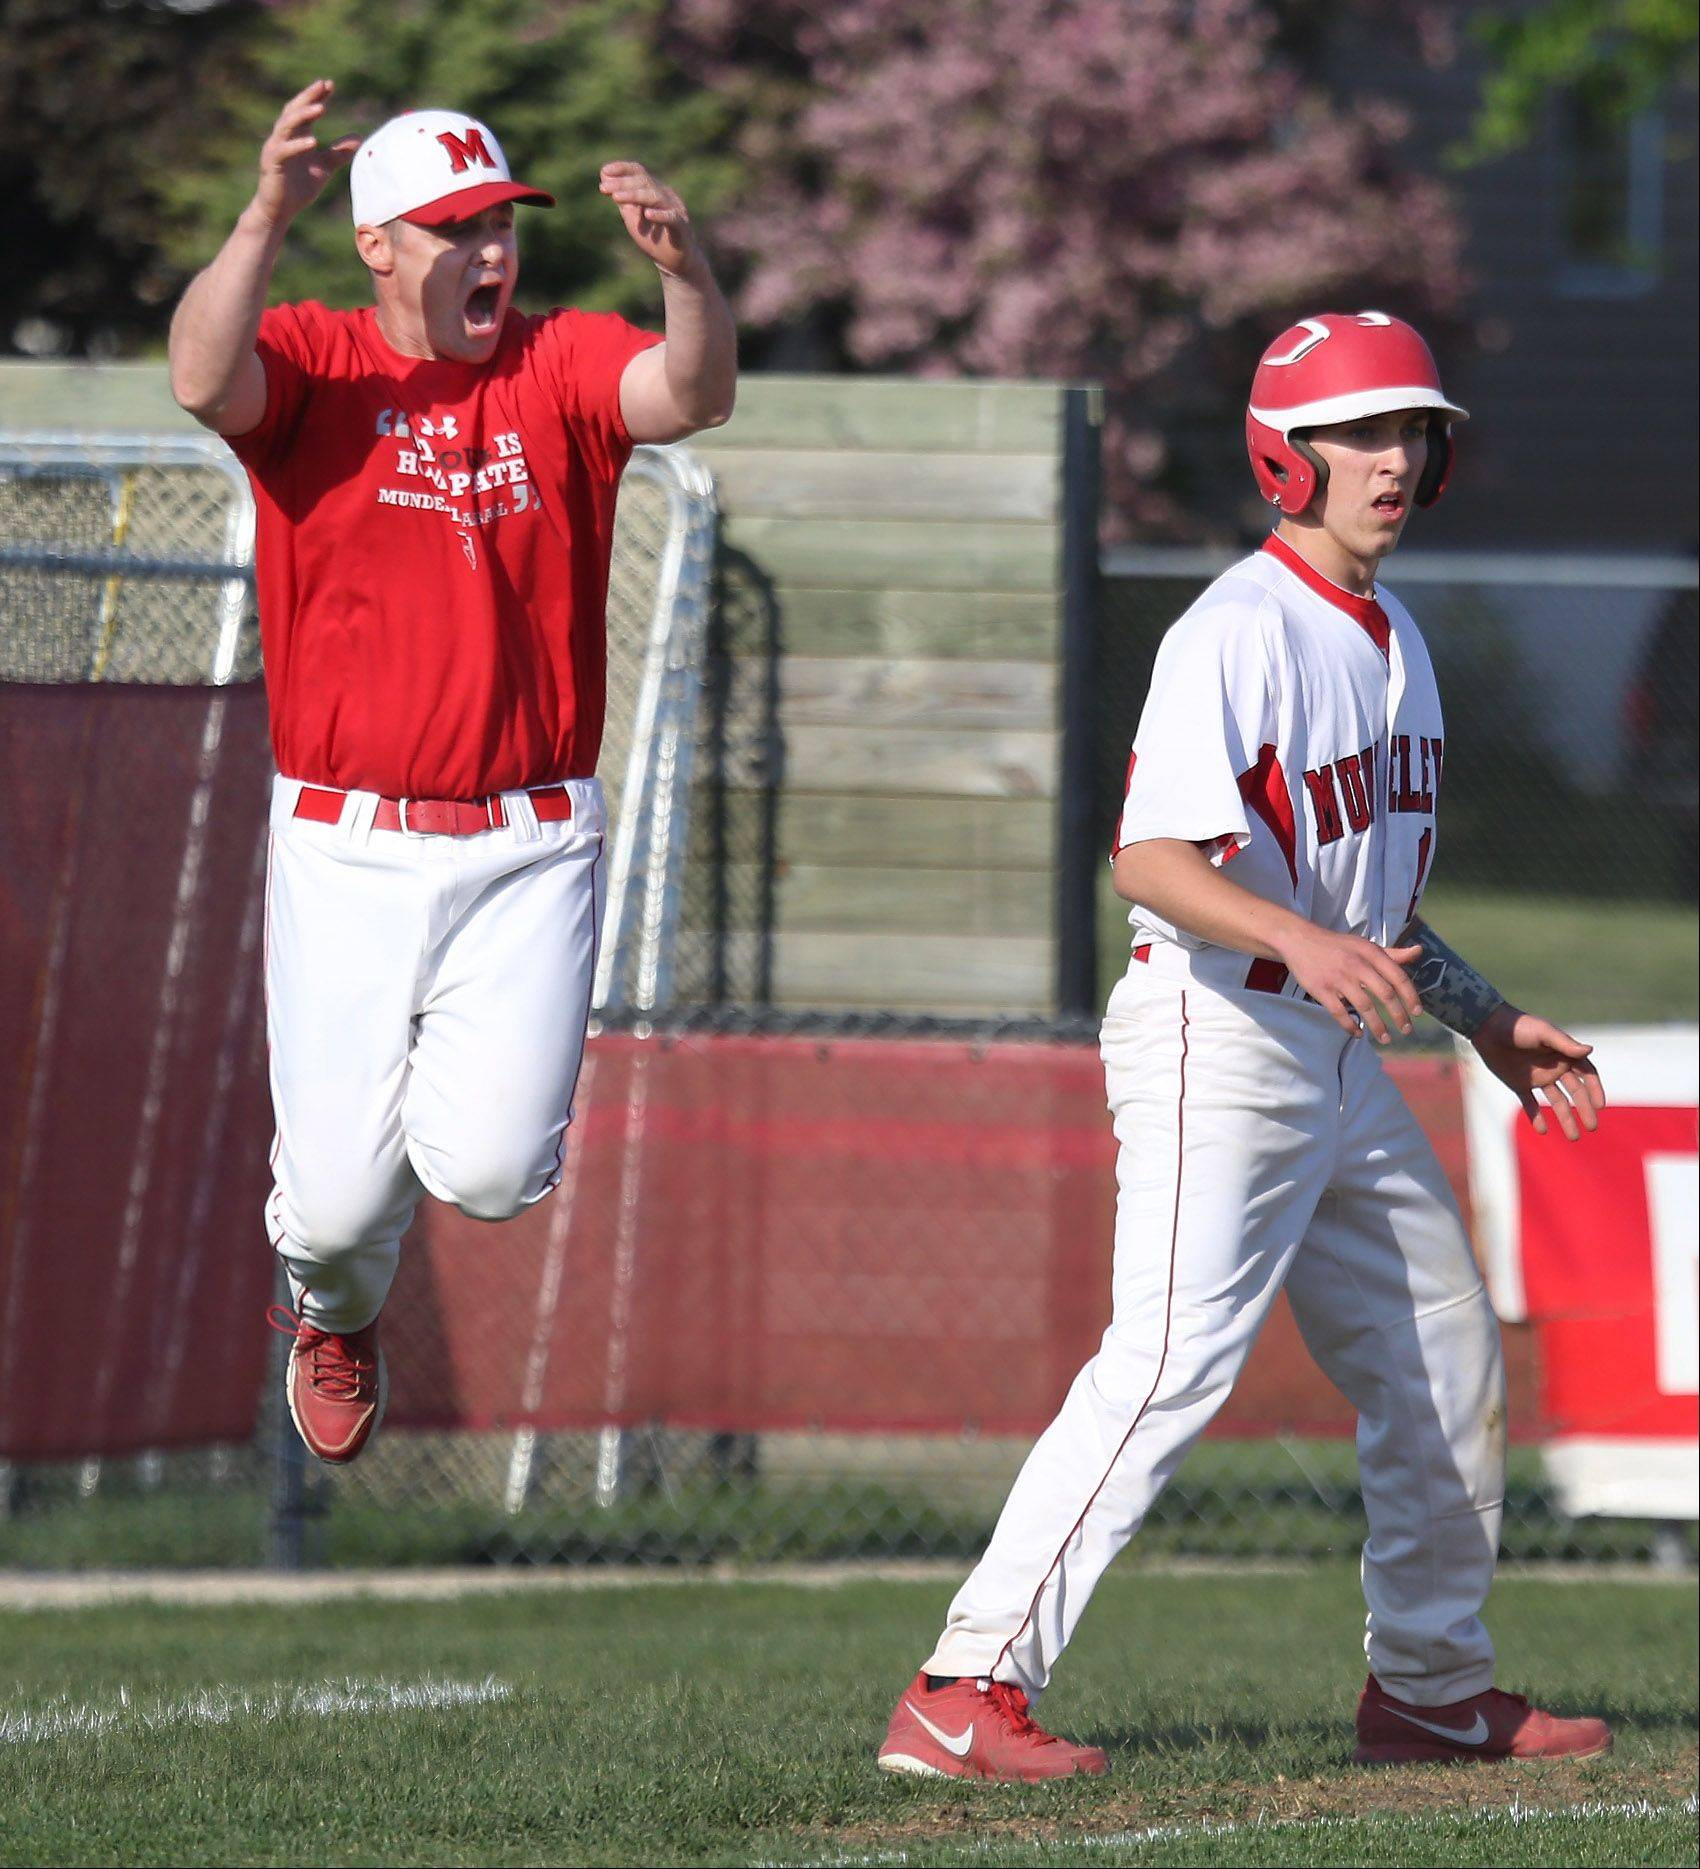 Mundelein coach Todd Parola reacts to a call at first base as Mundelein runner Dillon O'Donoghue rounds third during the North Suburban Conference baseball championship Thursday against Wauconda in Mundelein.